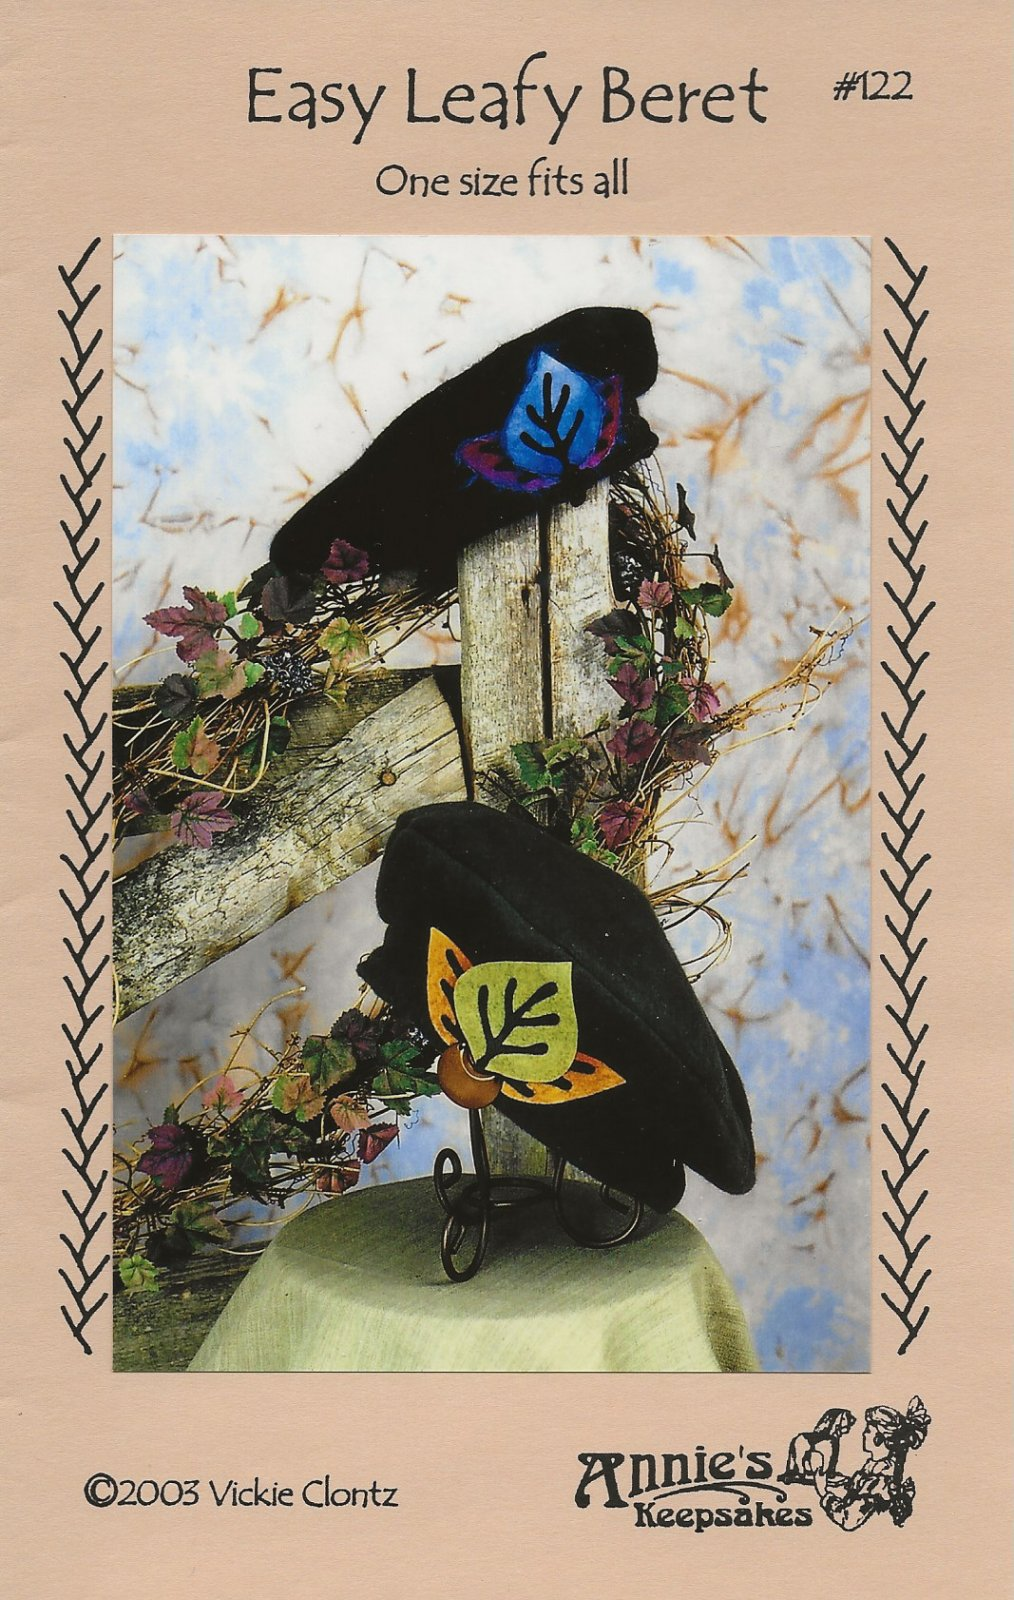 Easy Leafy Beret